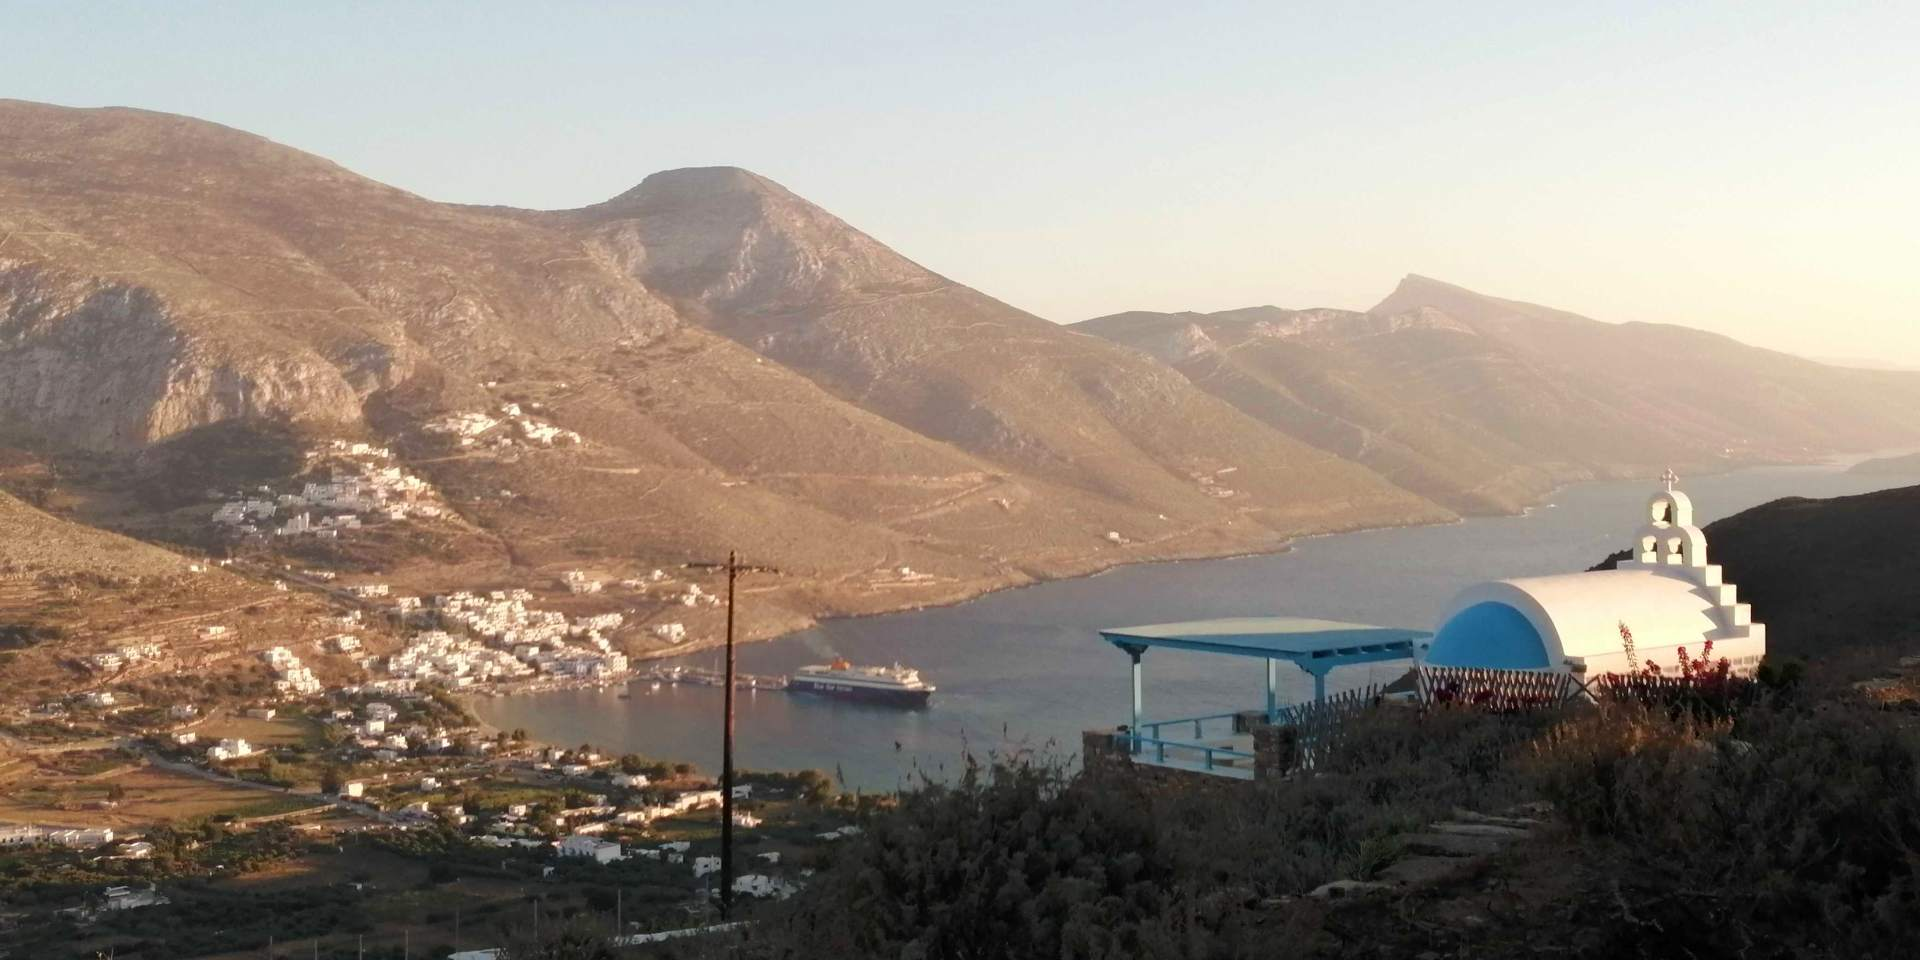 Ferry departing from the port of Aigiali in Amorgos, view of the port from Tholaria village